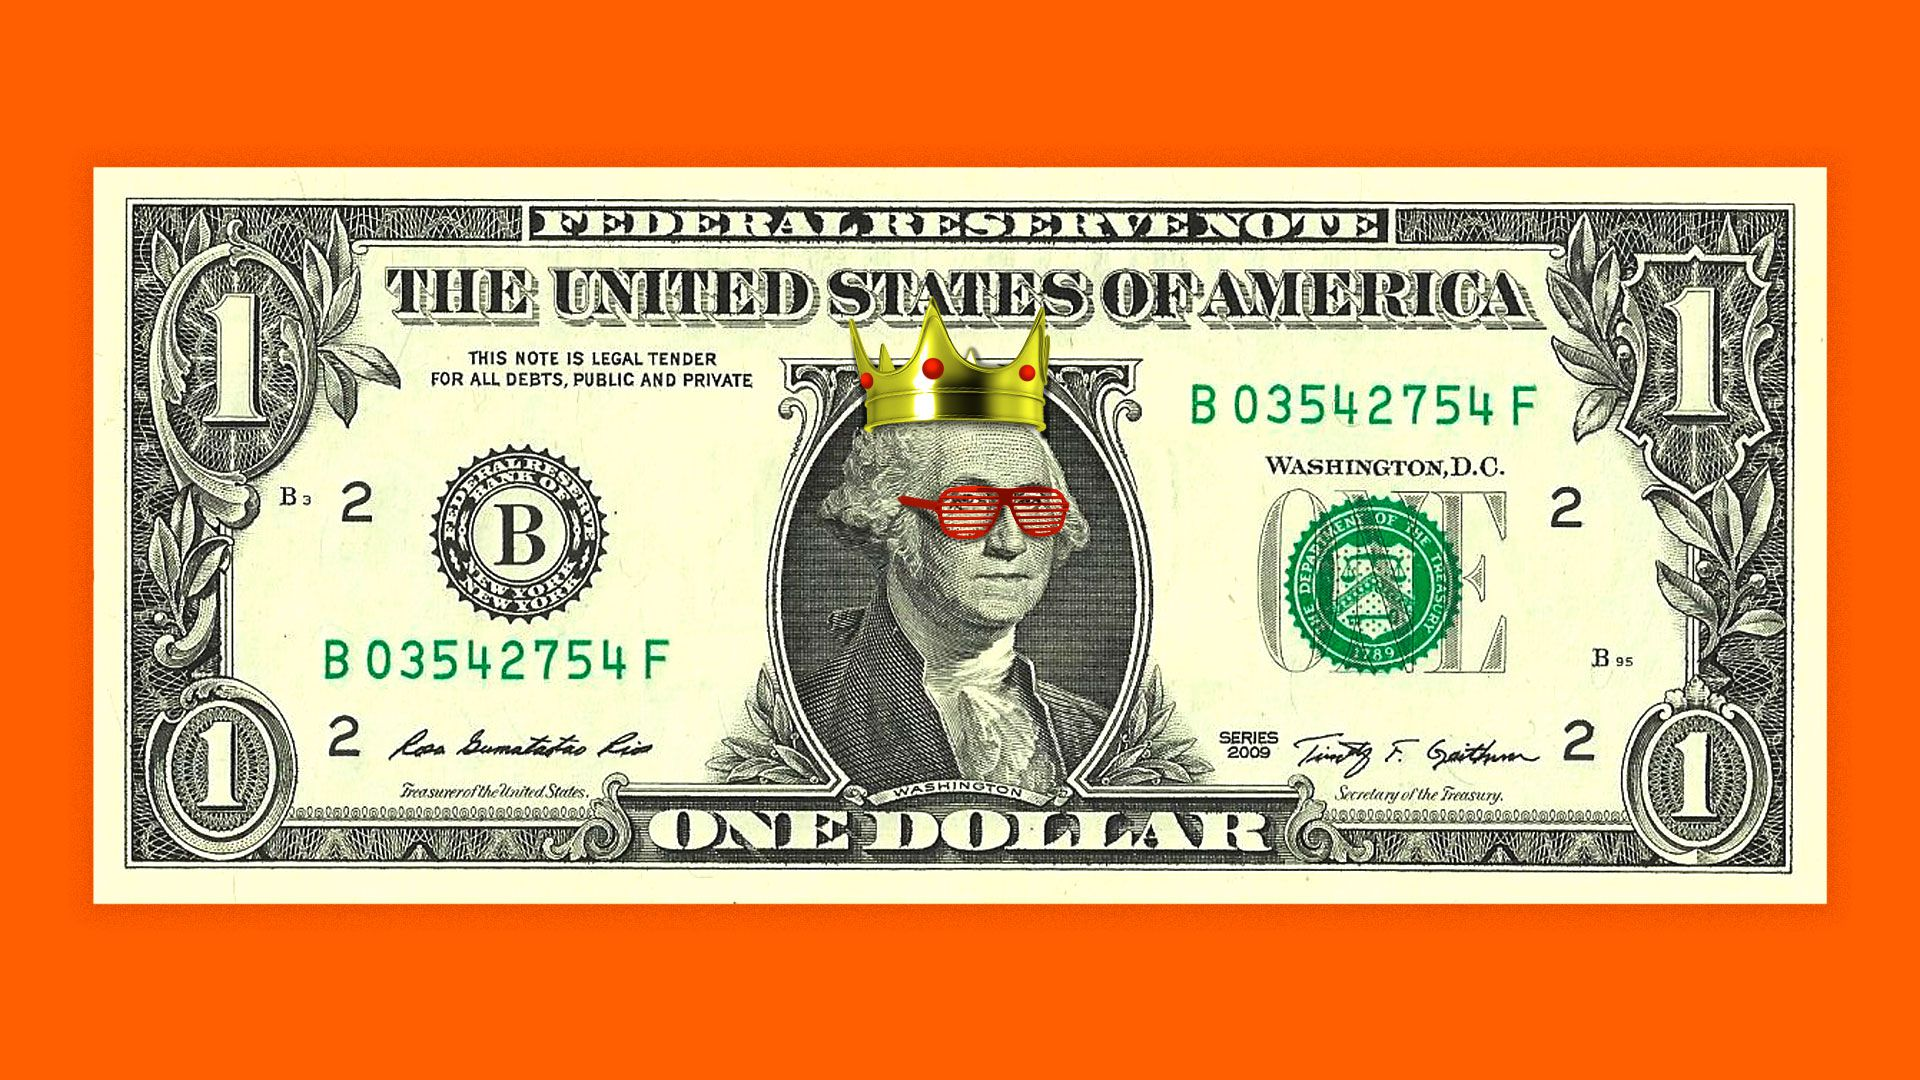 George Washington on the dollar bill wearing a crown and shutter shades.